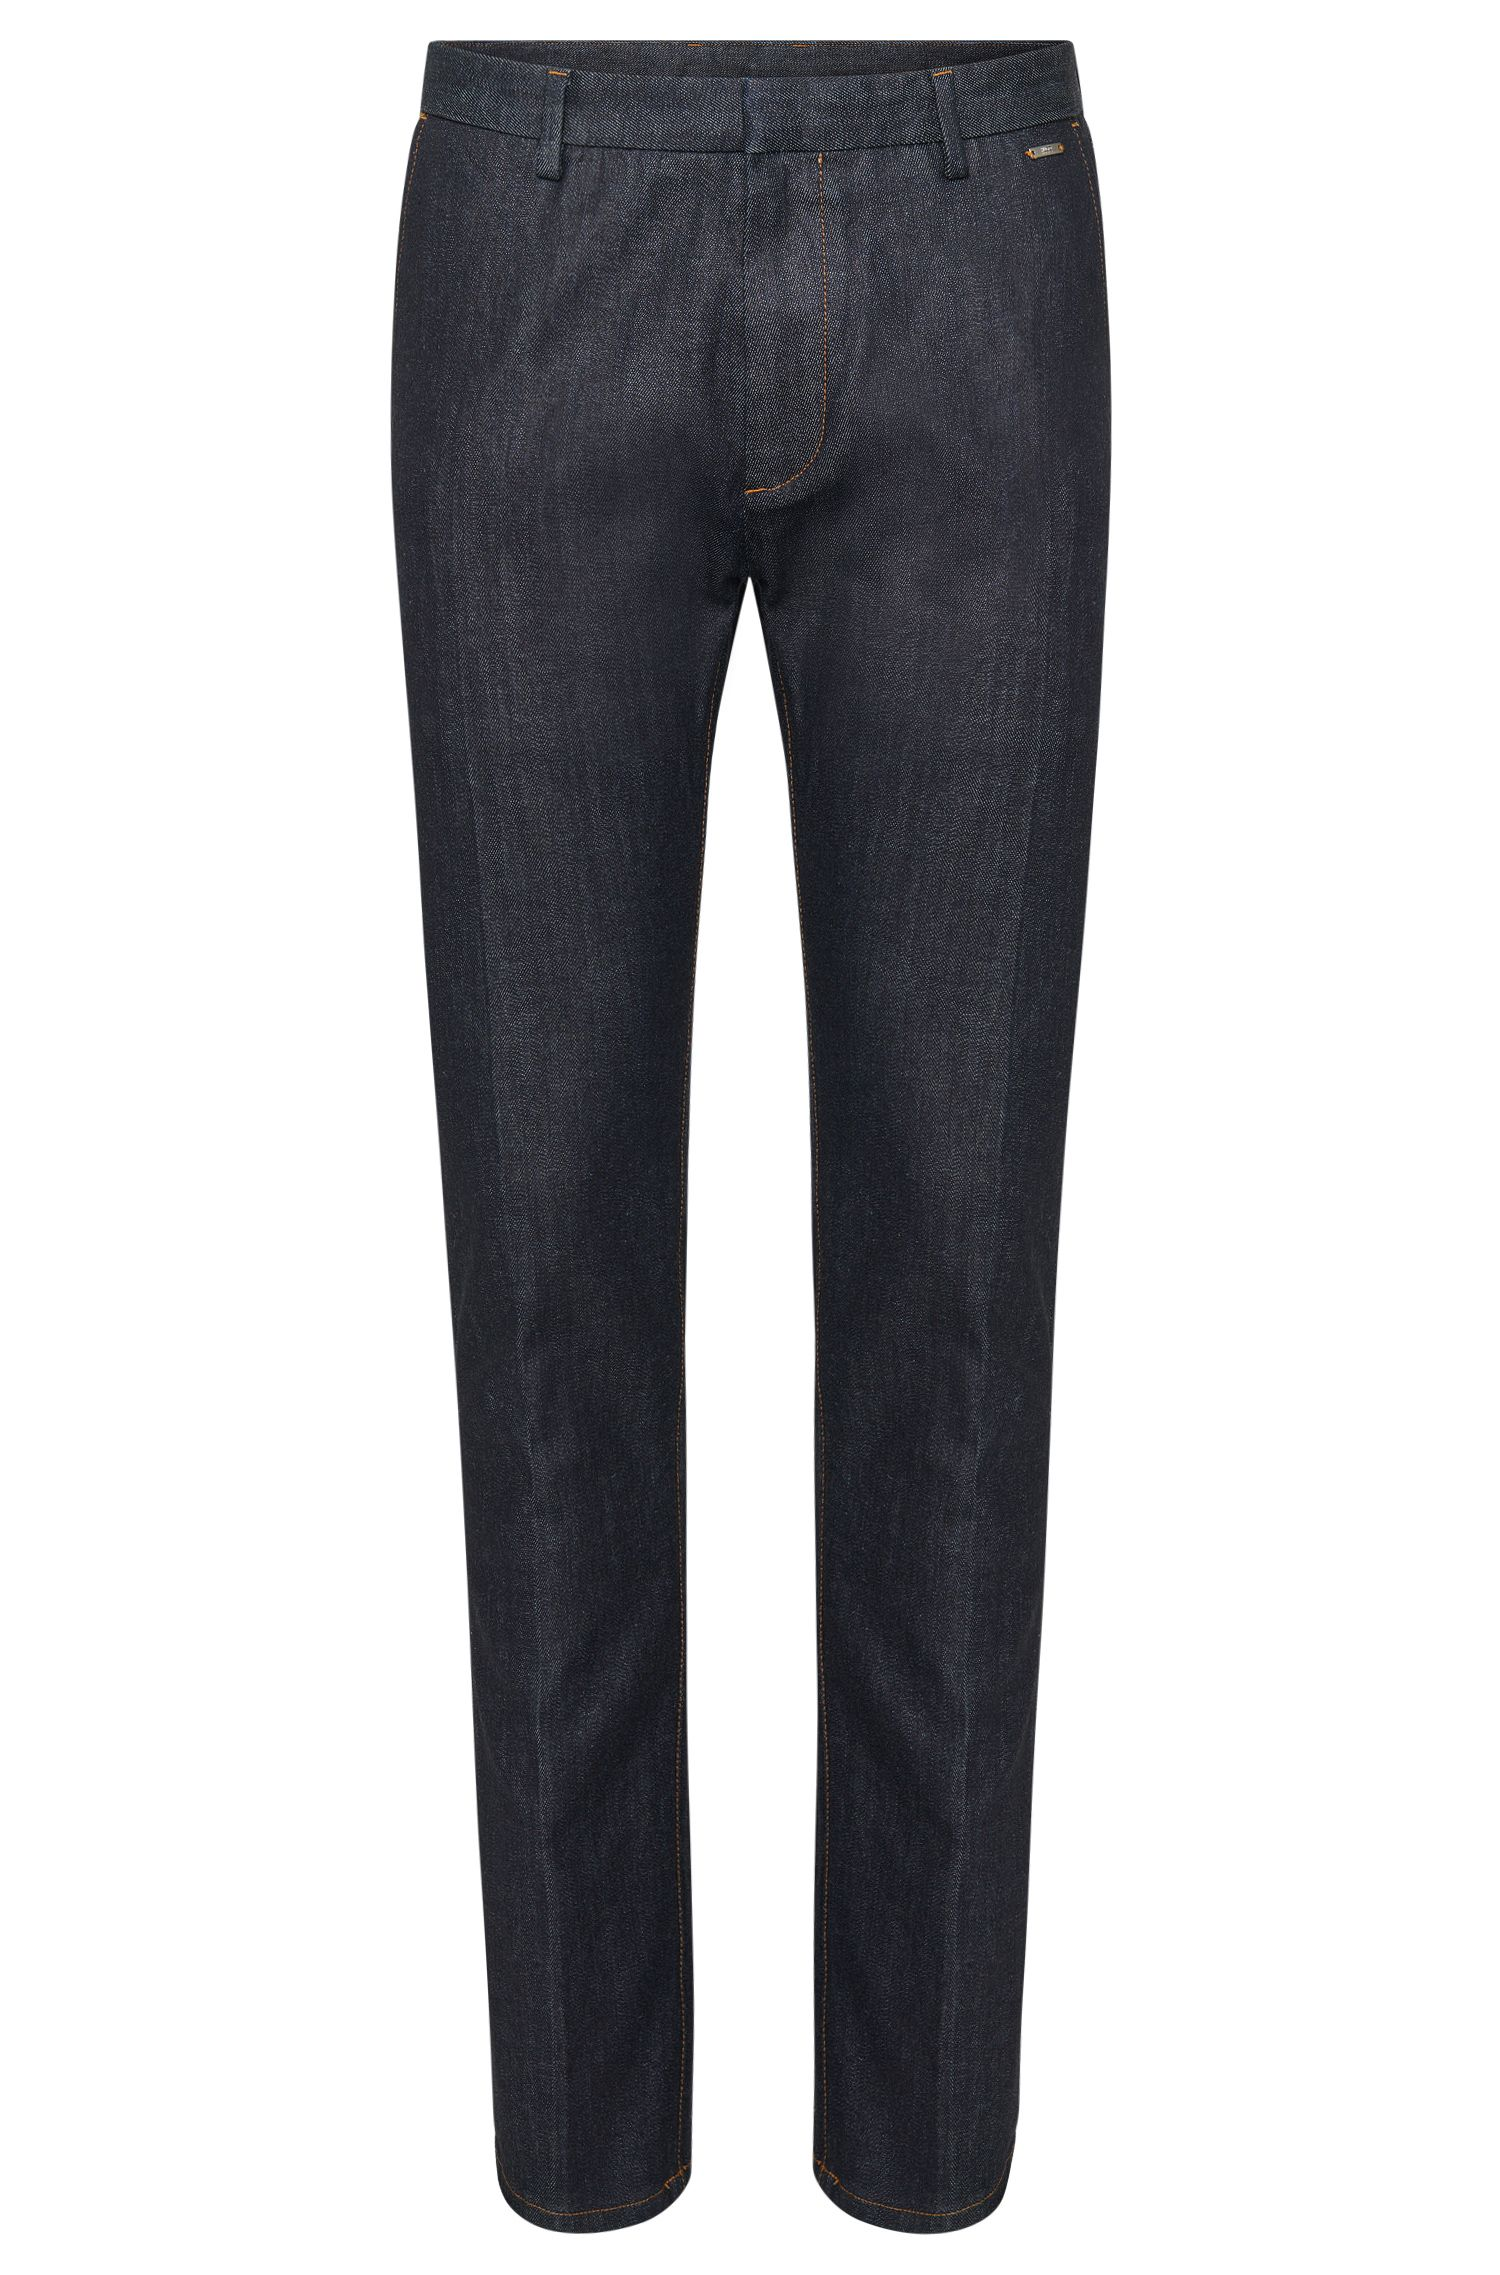 'Helgo-W' | Tapered Fit, Coated Cotton Blend Denim Trousers